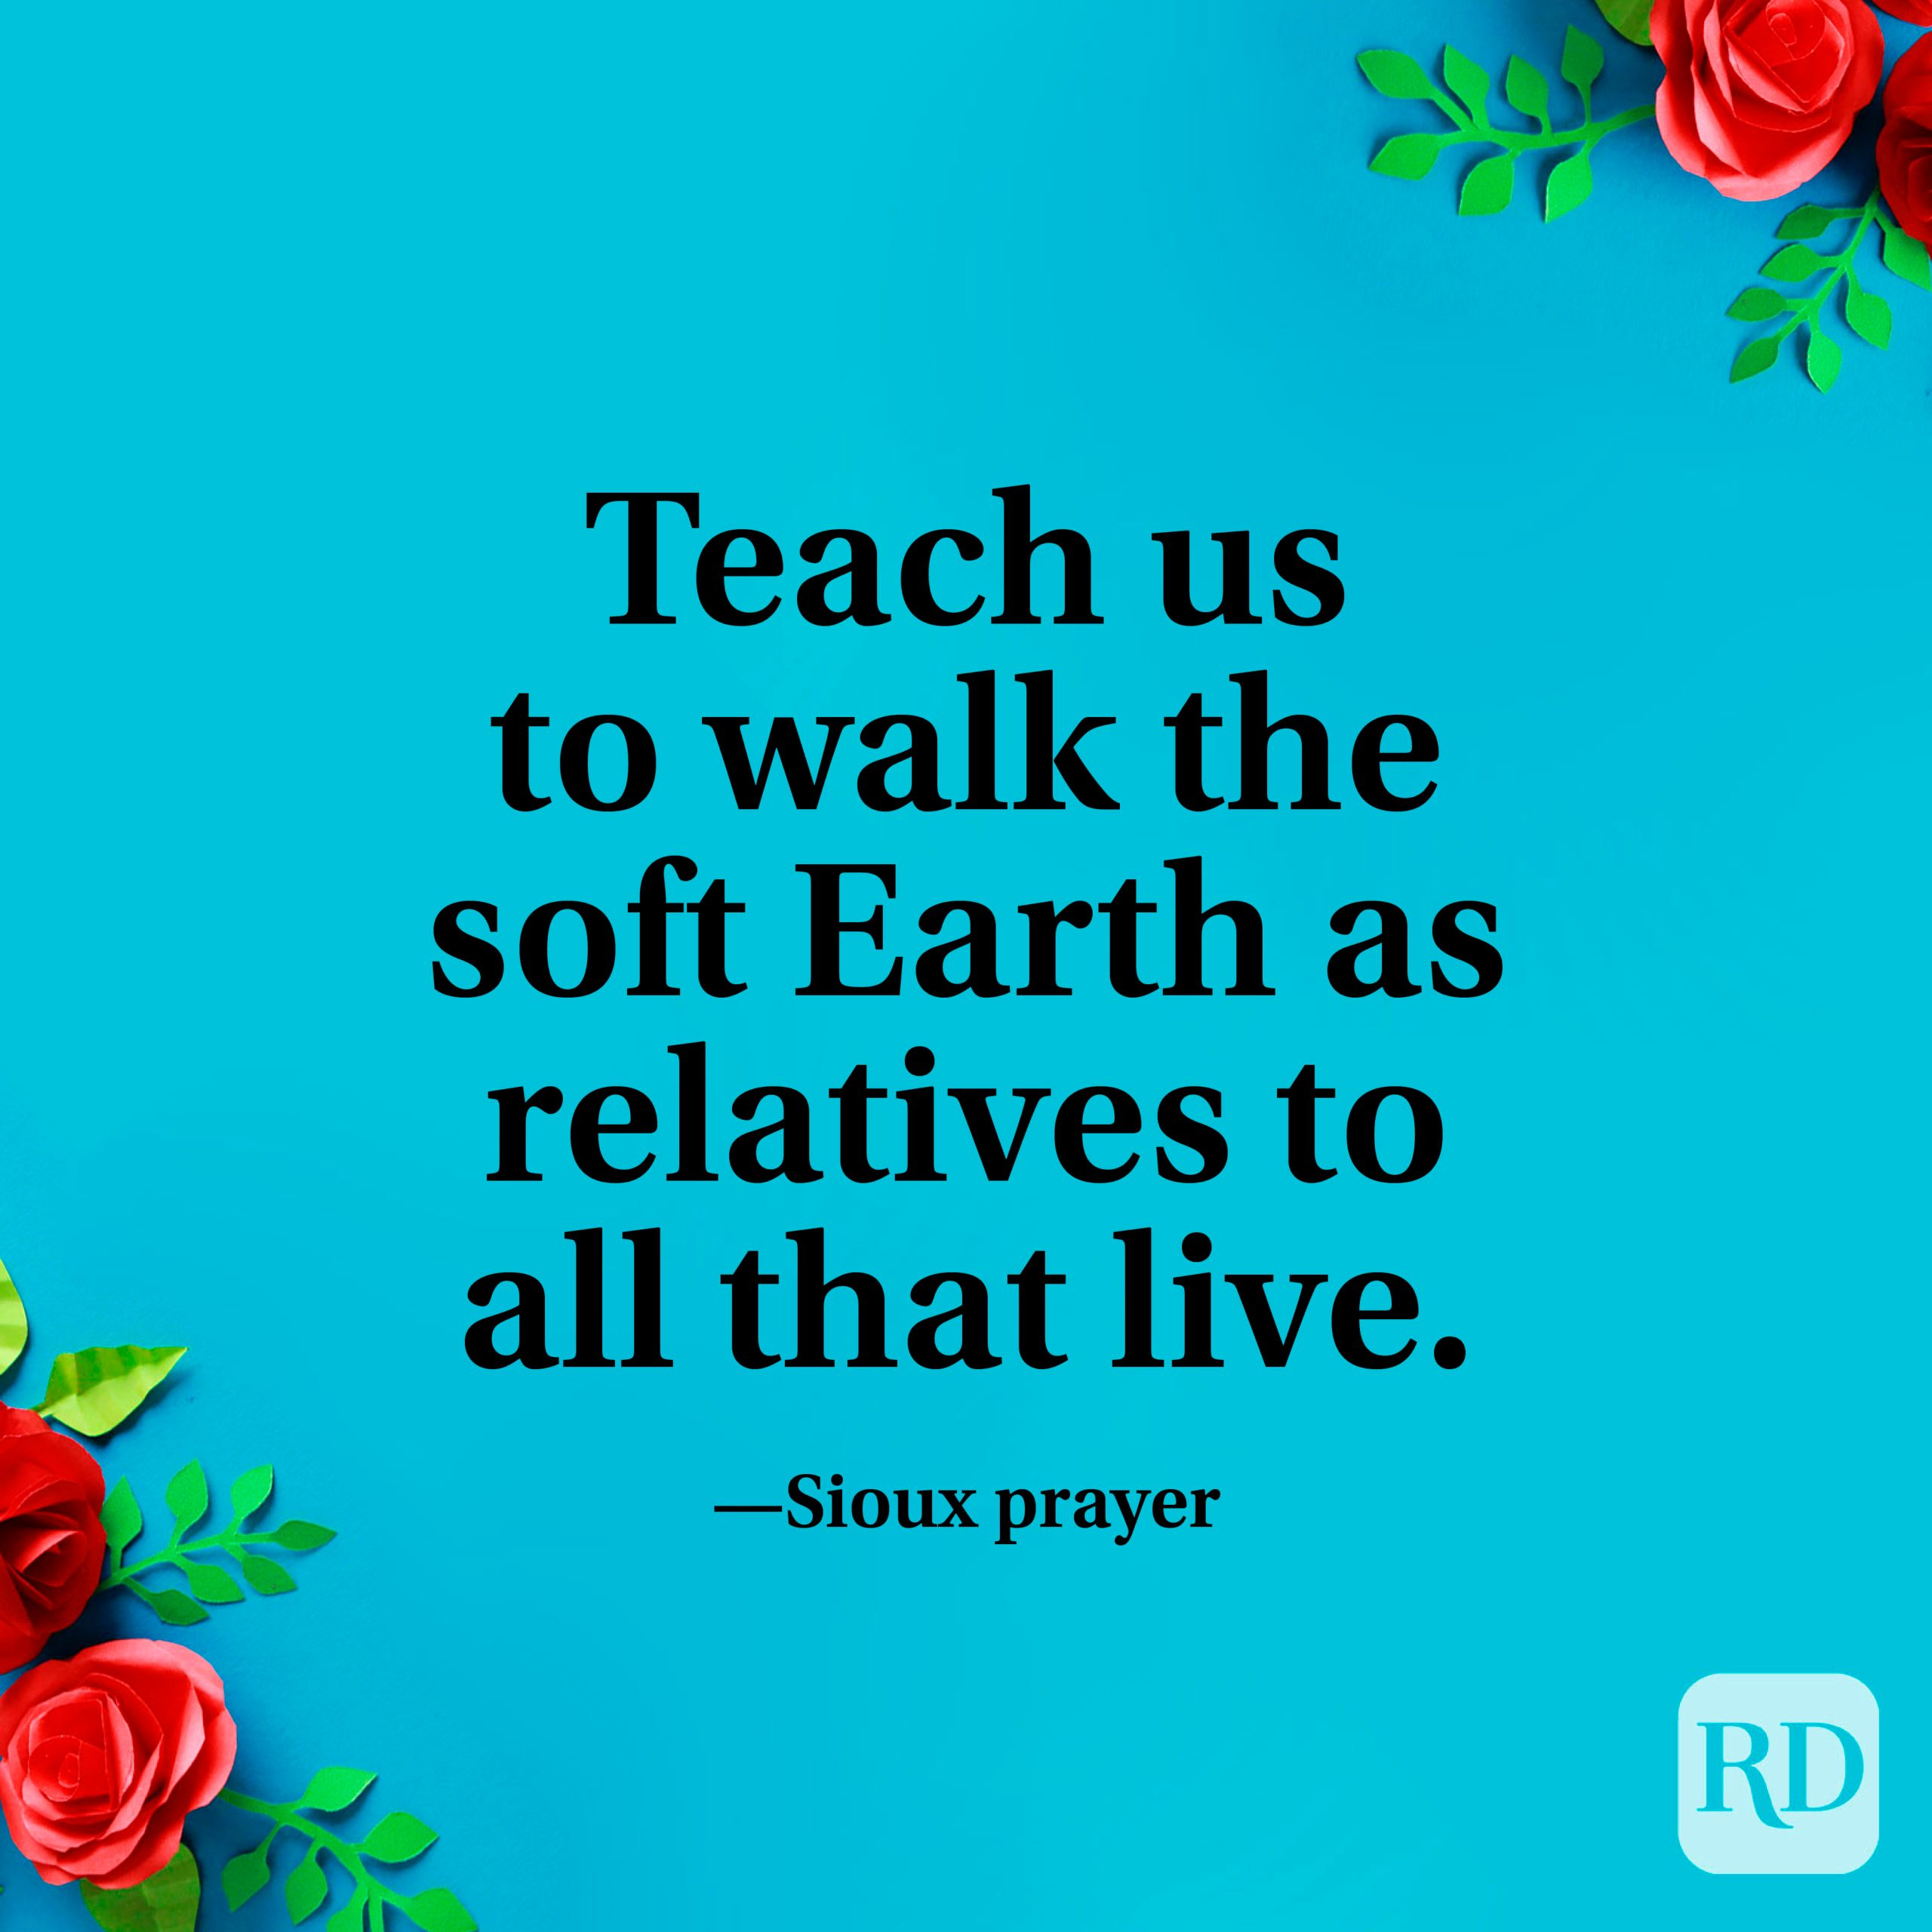 """""""Teach us to walk the soft Earth as relatives to all that live."""" —Sioux prayer"""